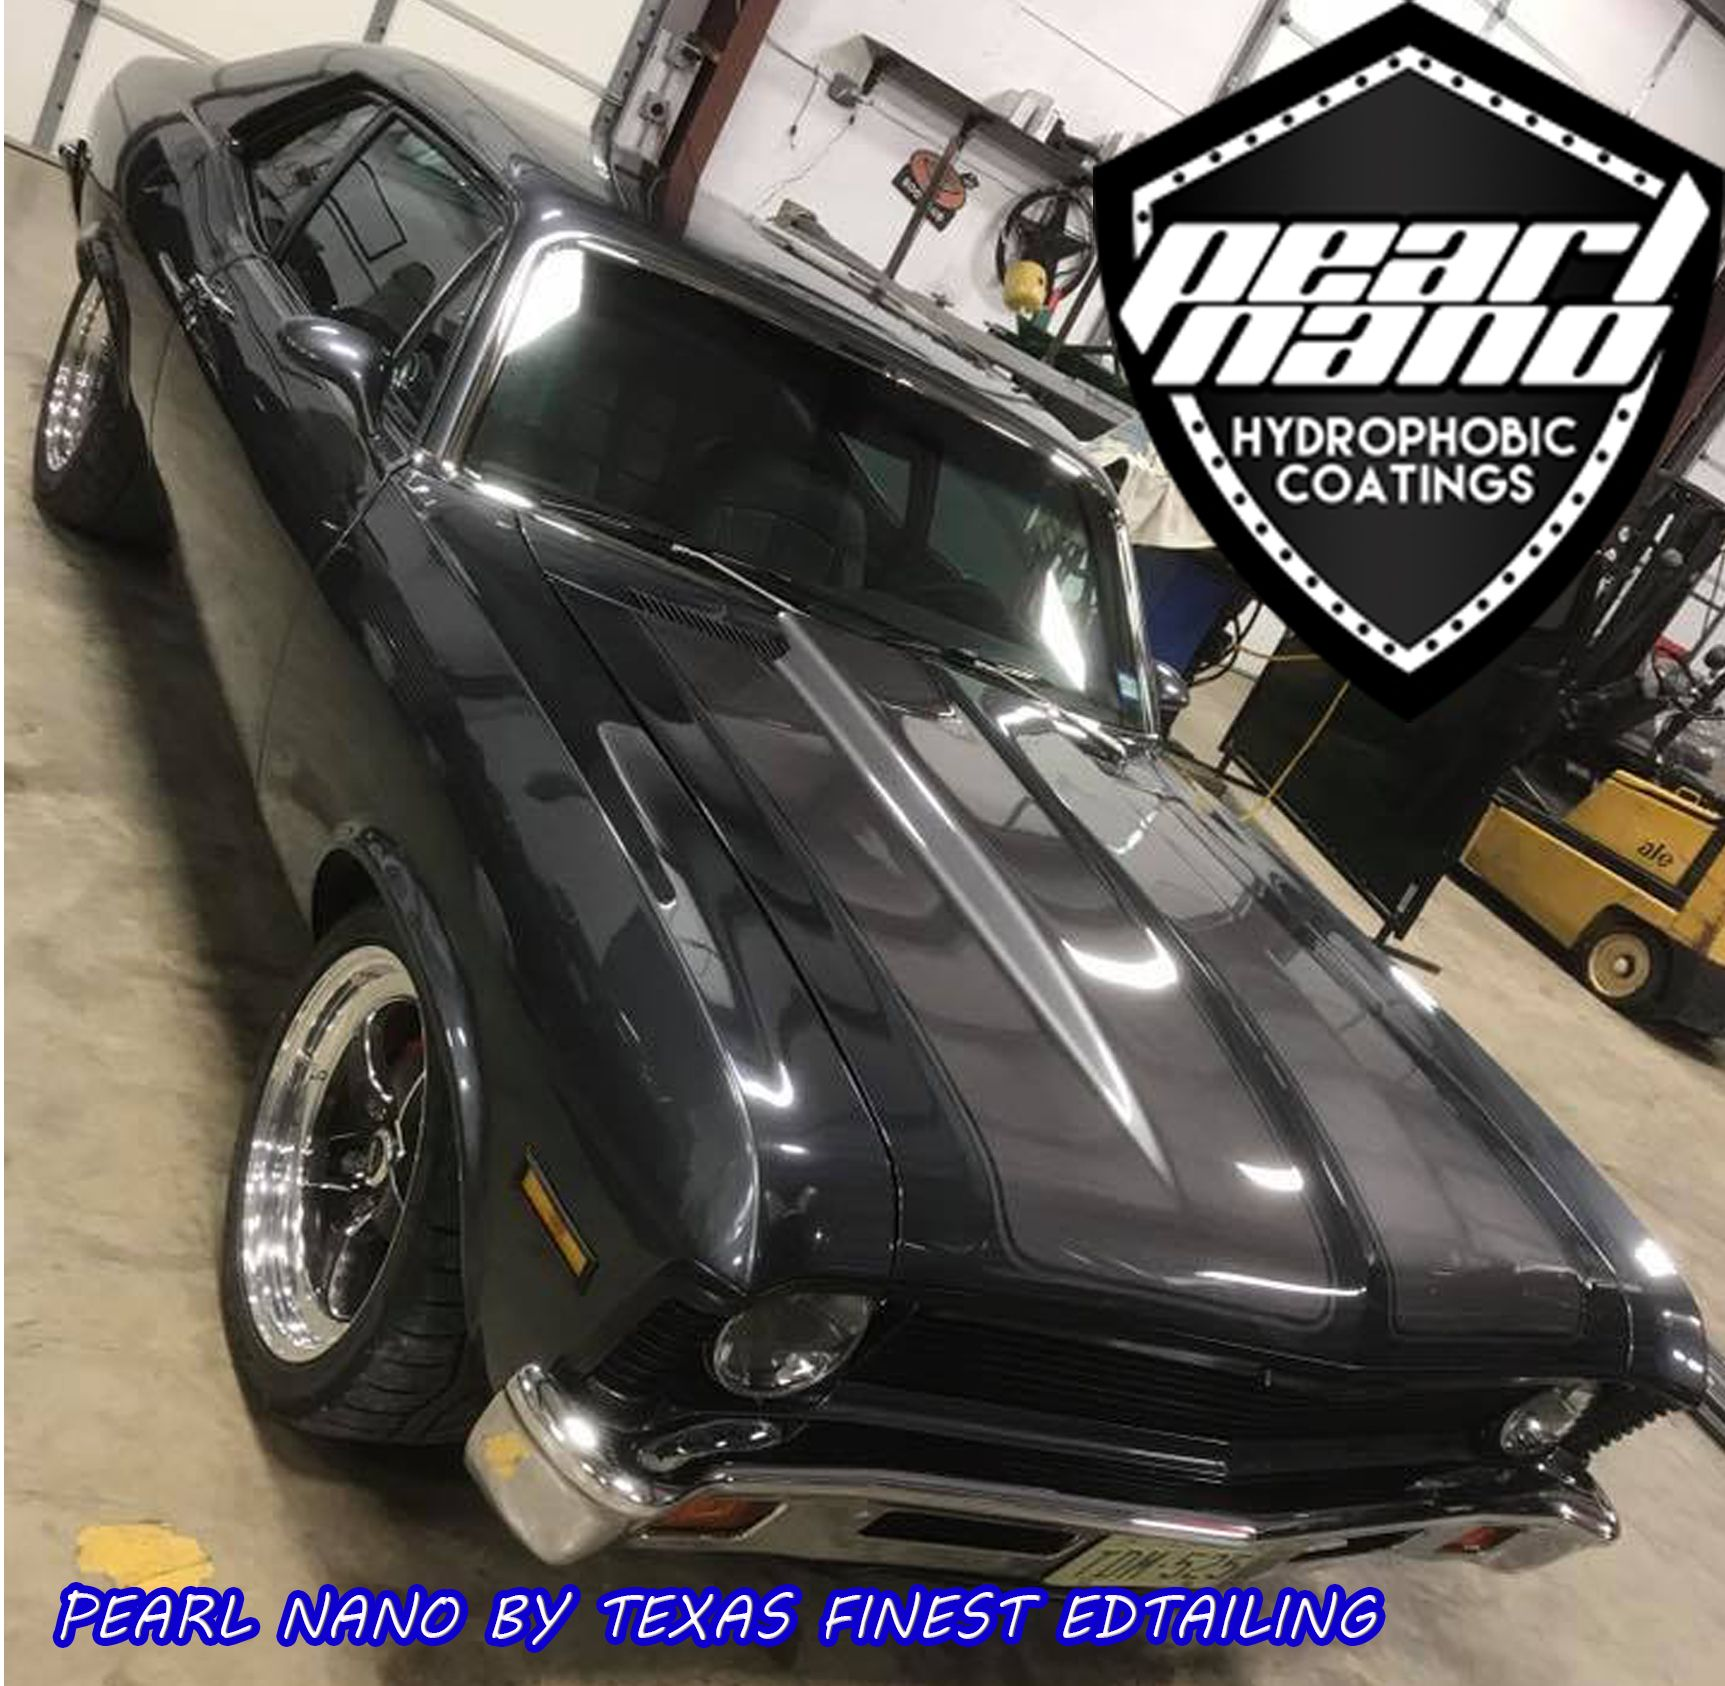 Pearl Nano by Daniel Hightower at Texas Finest Detailing